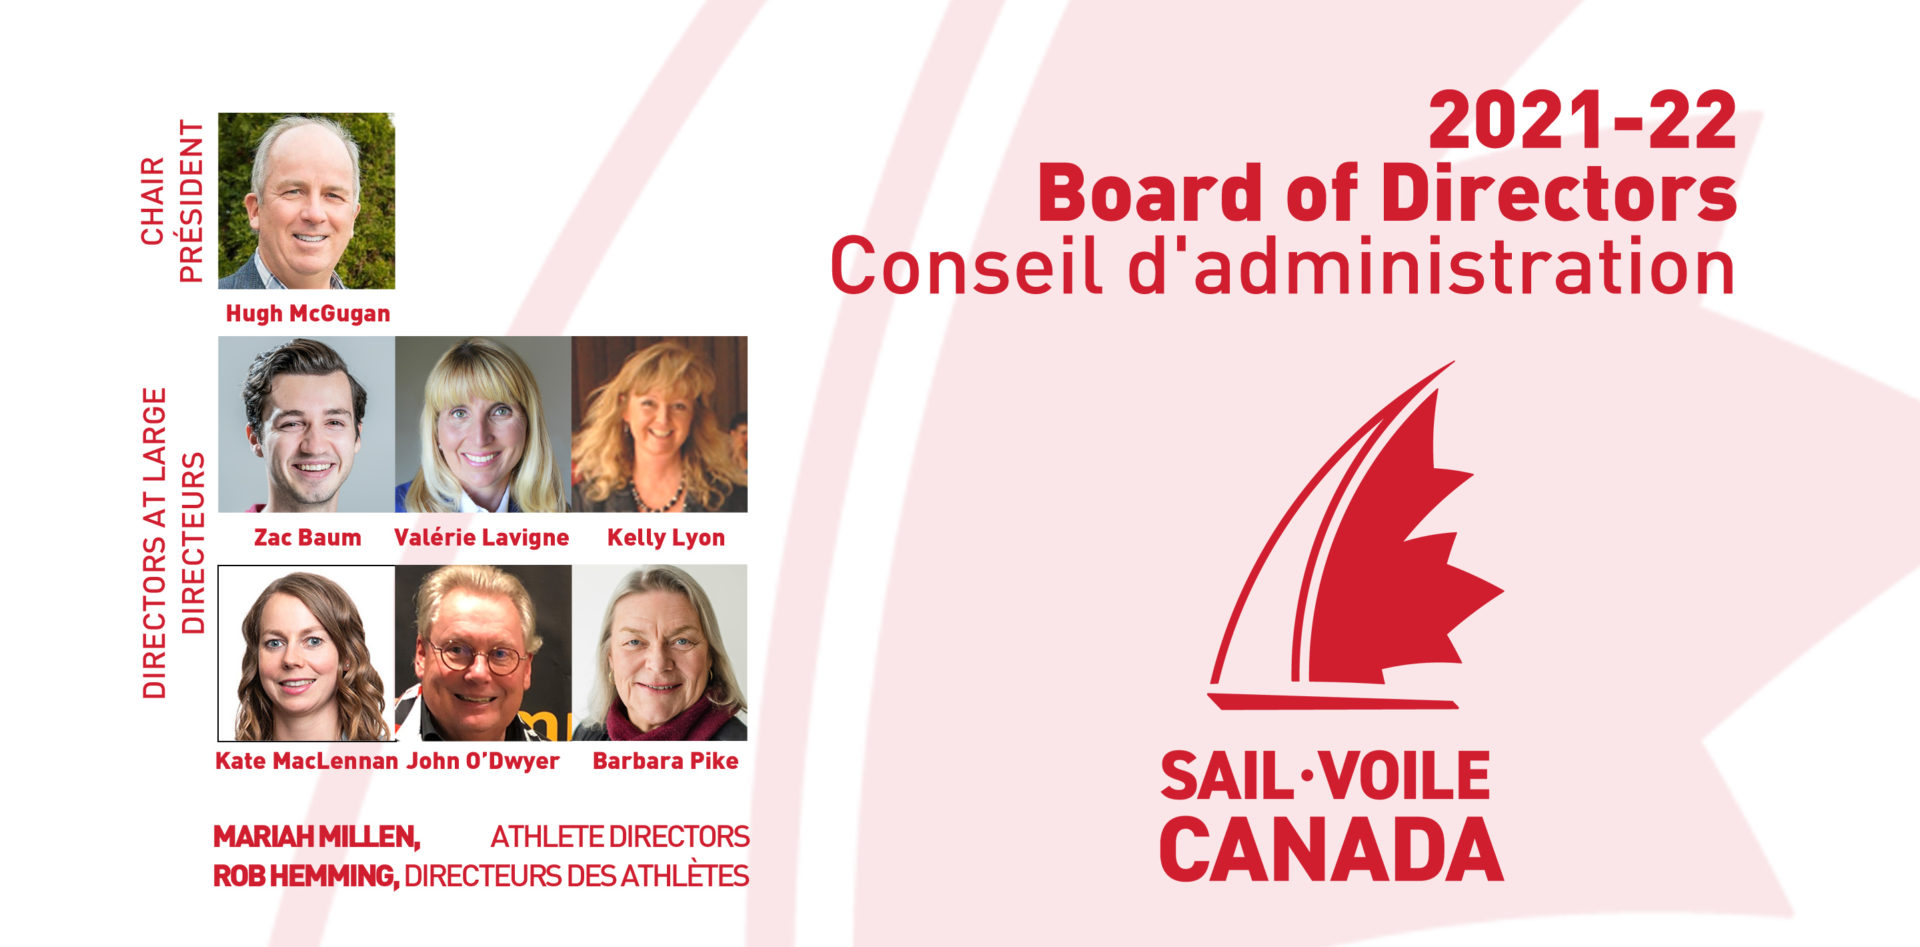 Sail Canada introduces its Board of Directors for 2021-2022